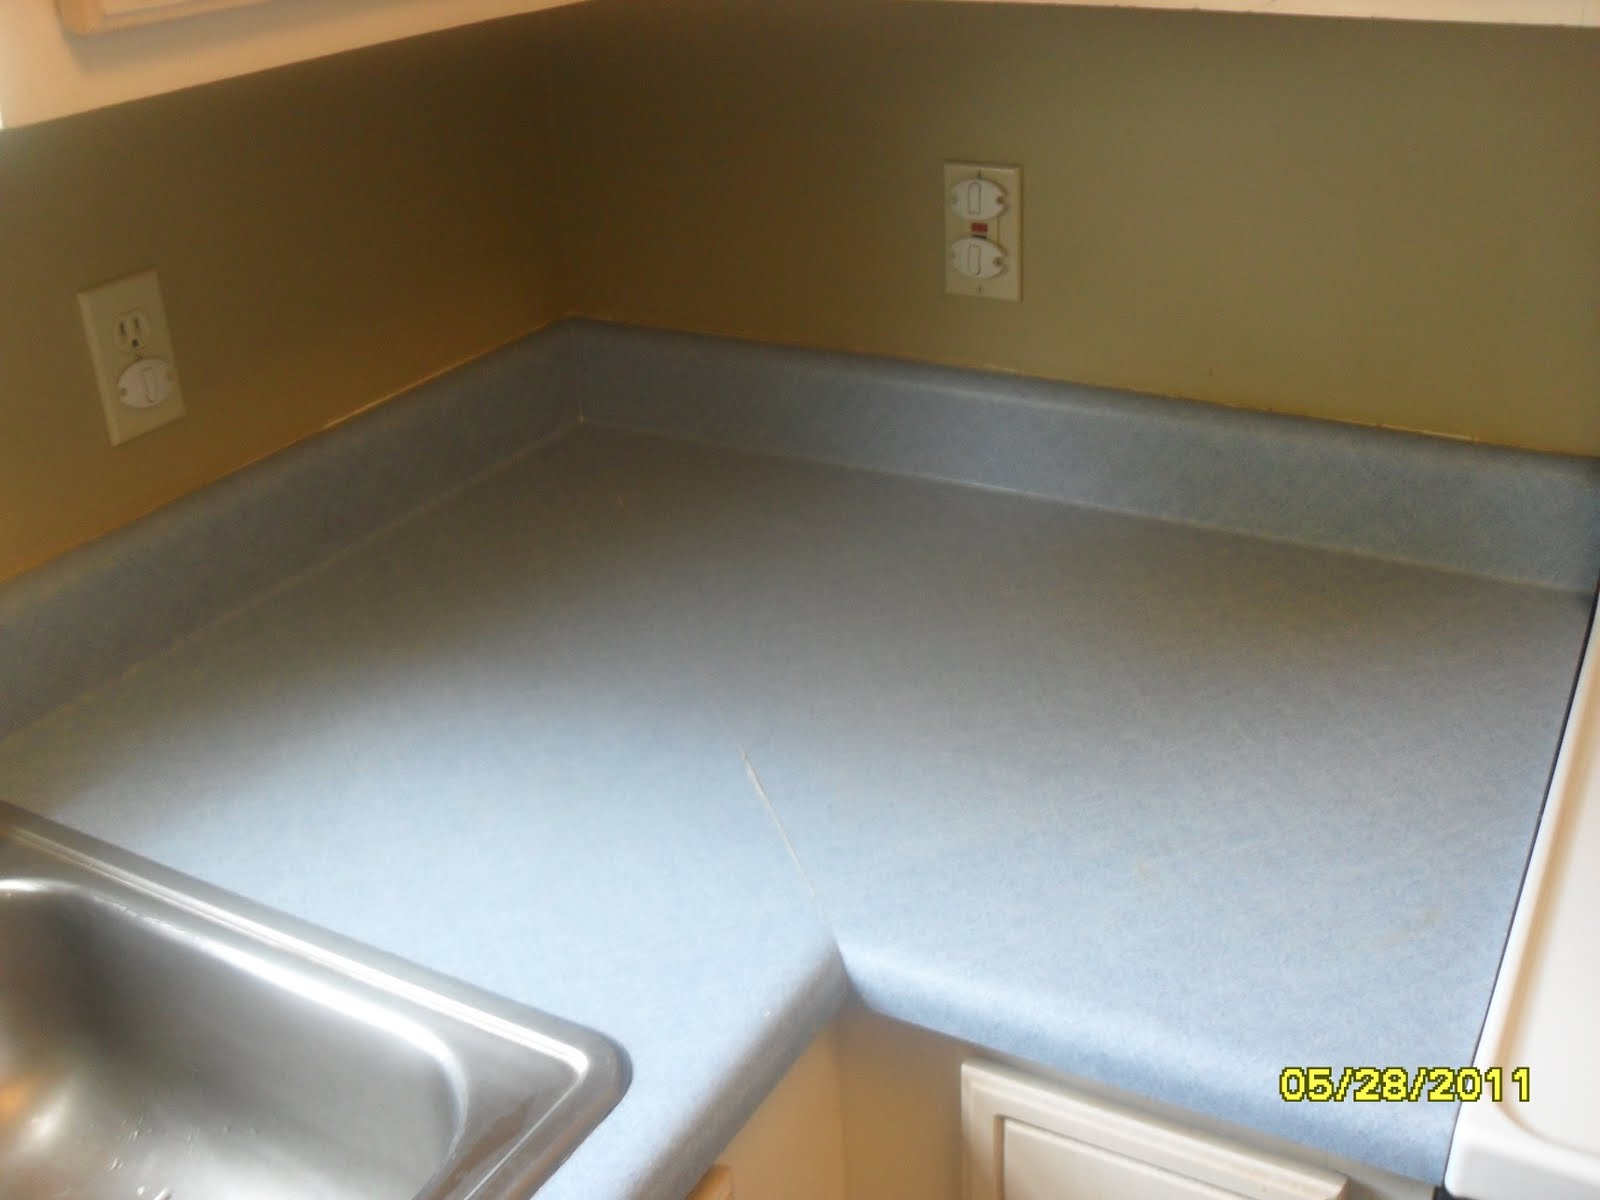 Countertop Paint Reviews : ... : Giani Countertop Granite Paint Review & Giveaway! 6/30 midnight